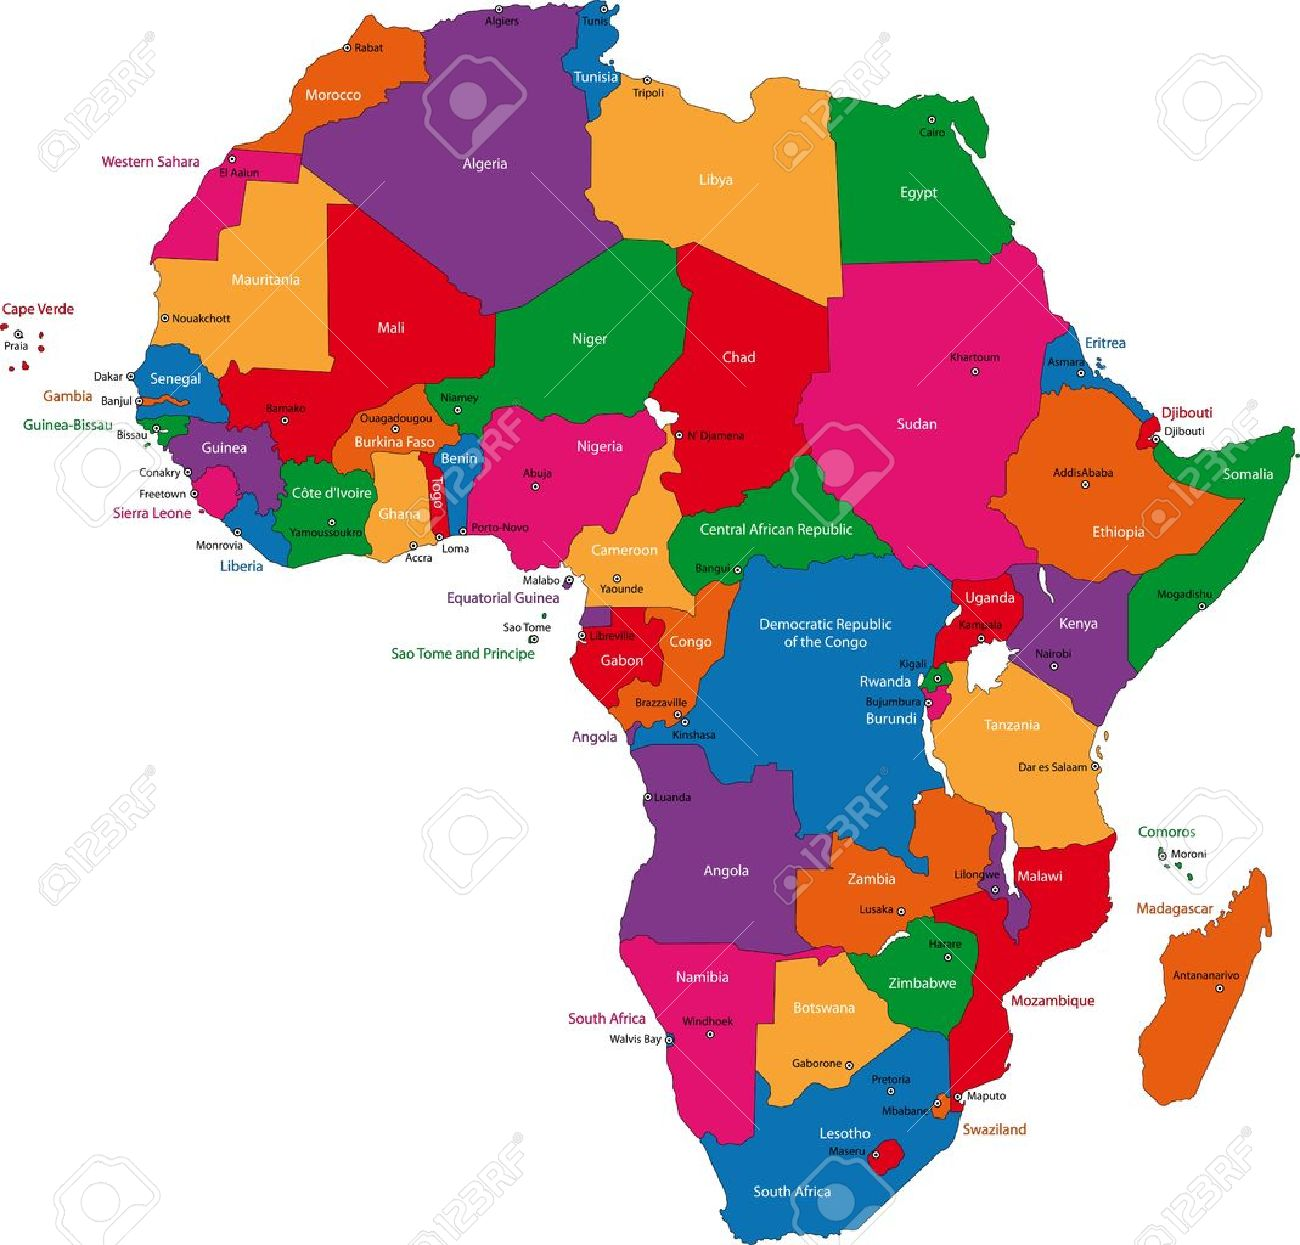 Colorful Africa Map With Countries And Capital Cities Royalty Free